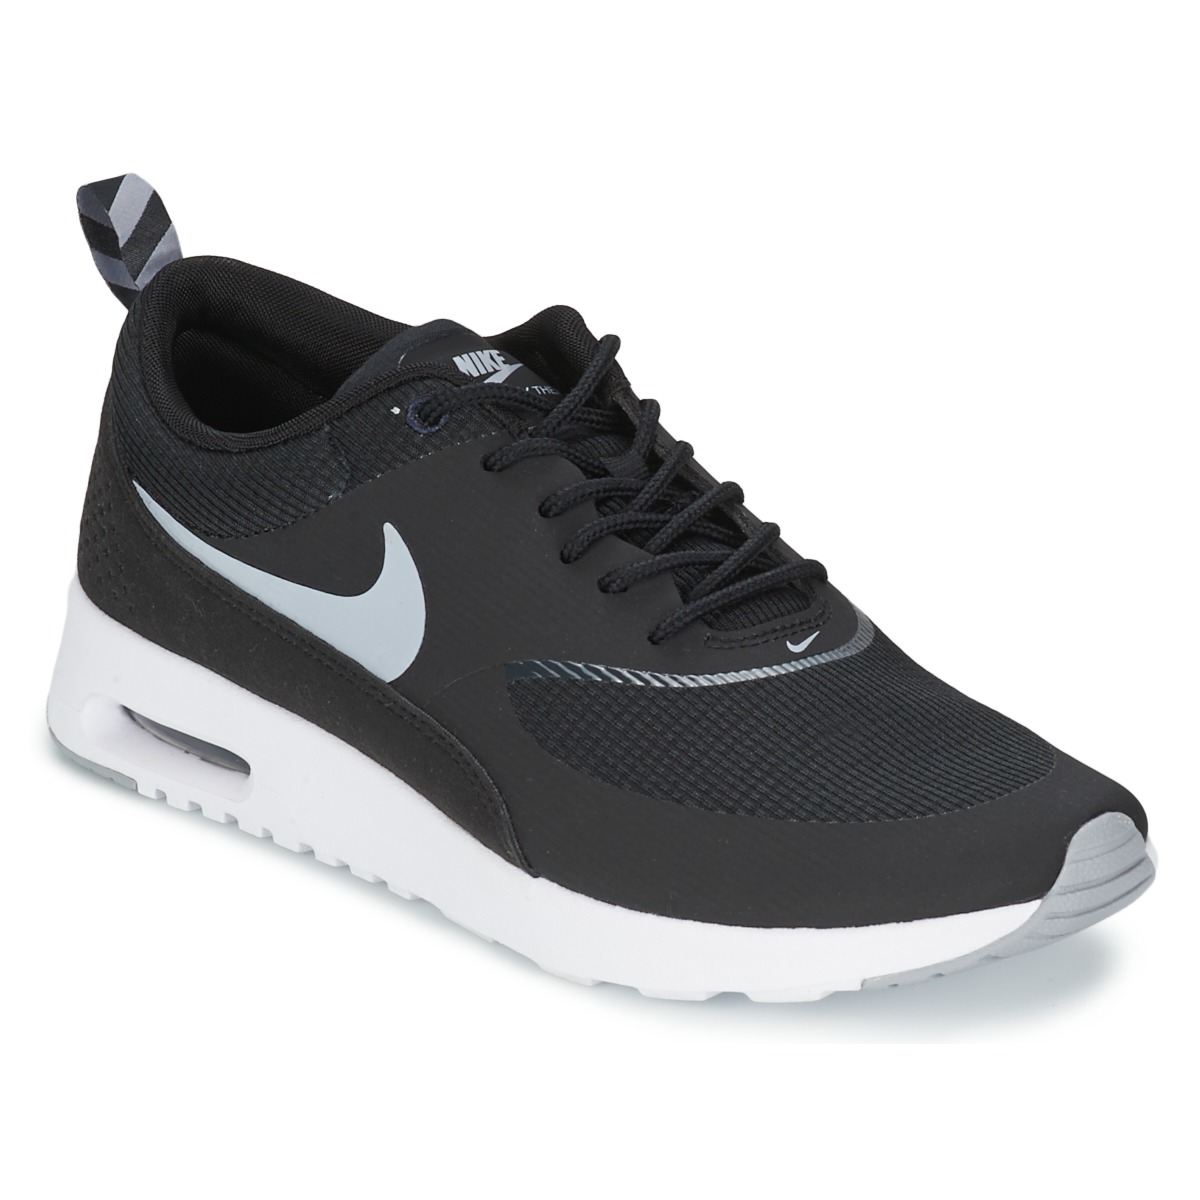 baskets basses nike air max thea noir wolf grey anthracite blanc livraison gratuite avec. Black Bedroom Furniture Sets. Home Design Ideas